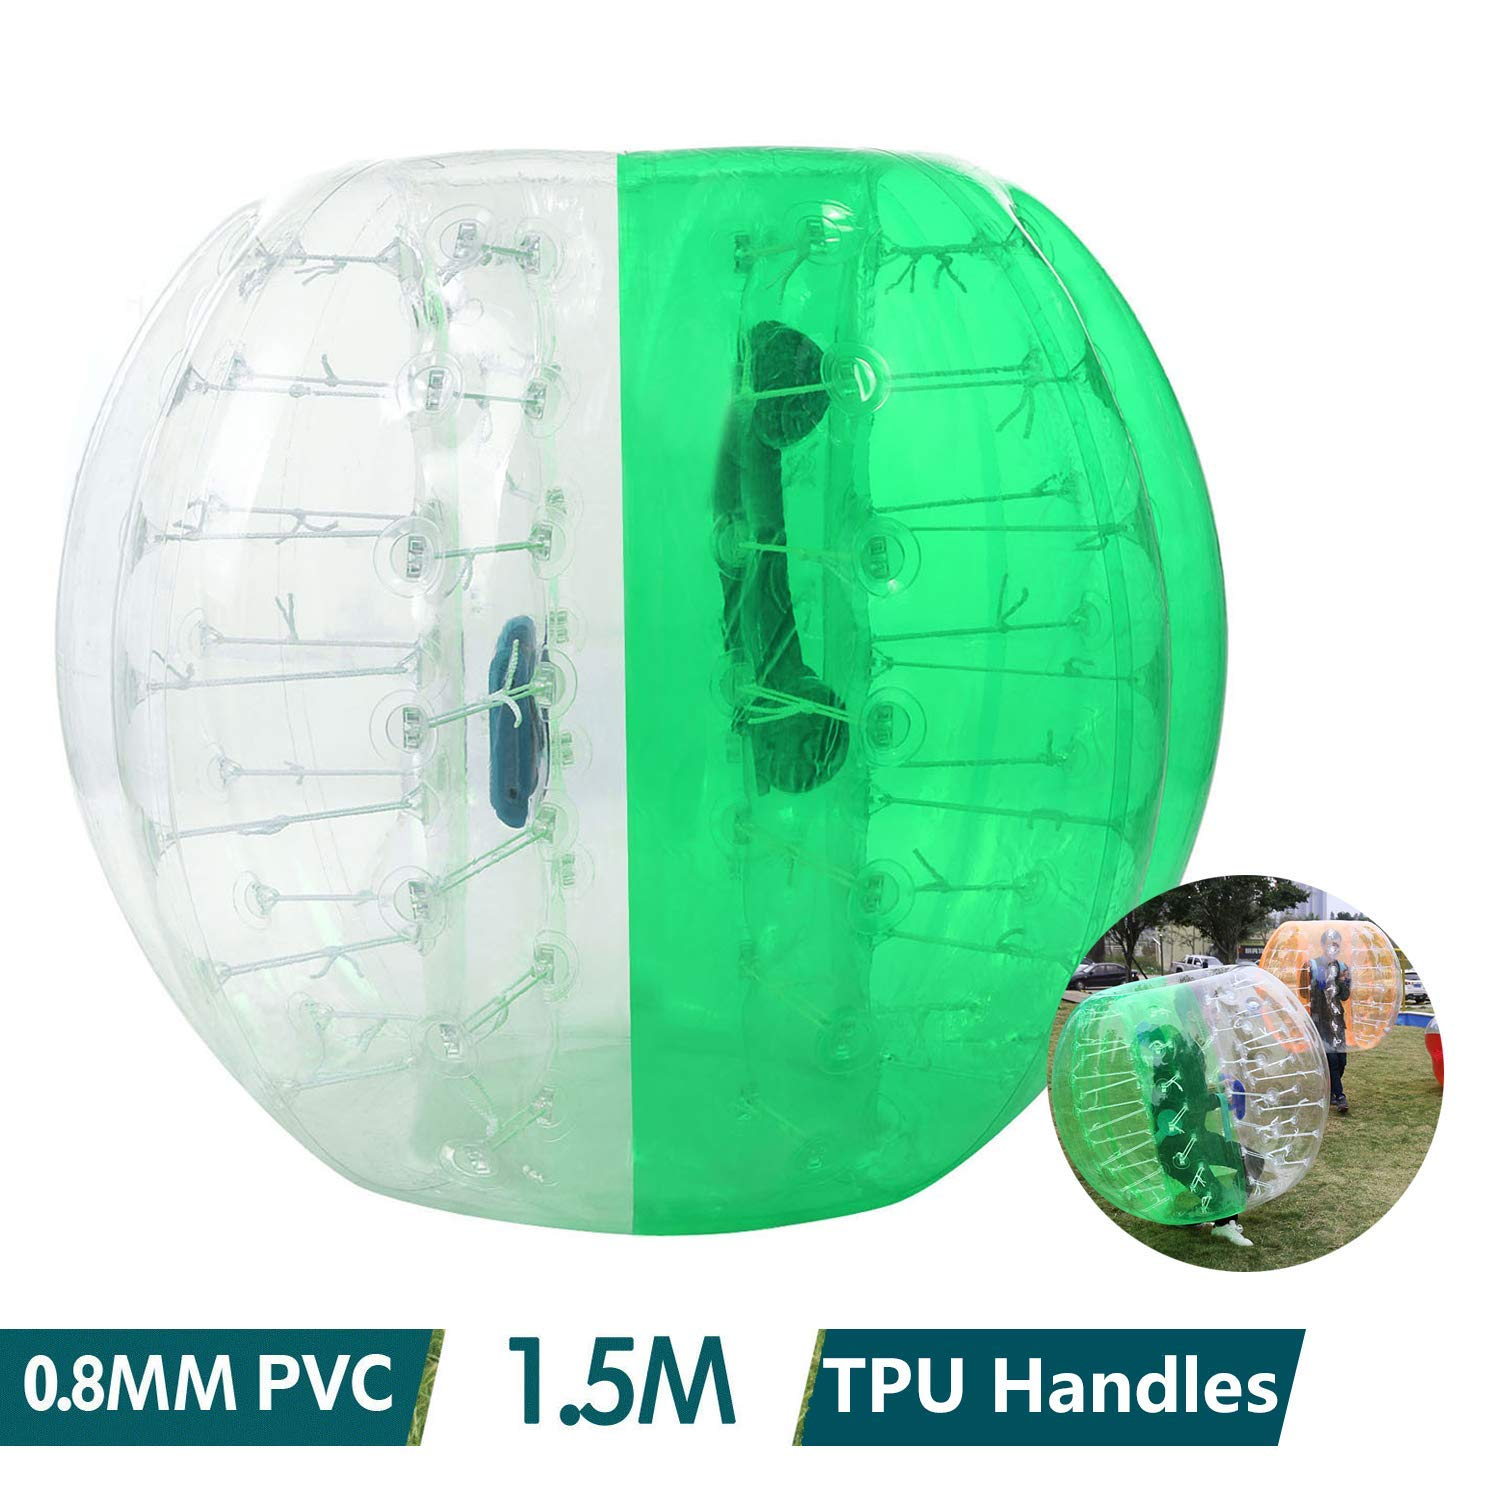 shaofu Inflatable Bumper Ball Dia 4/5 ft (1.2/1.5 m) Human Hamster Ball for Adults/Kids Eight Colors(US Stock) (Dia 5 ft/Green) by shaofu